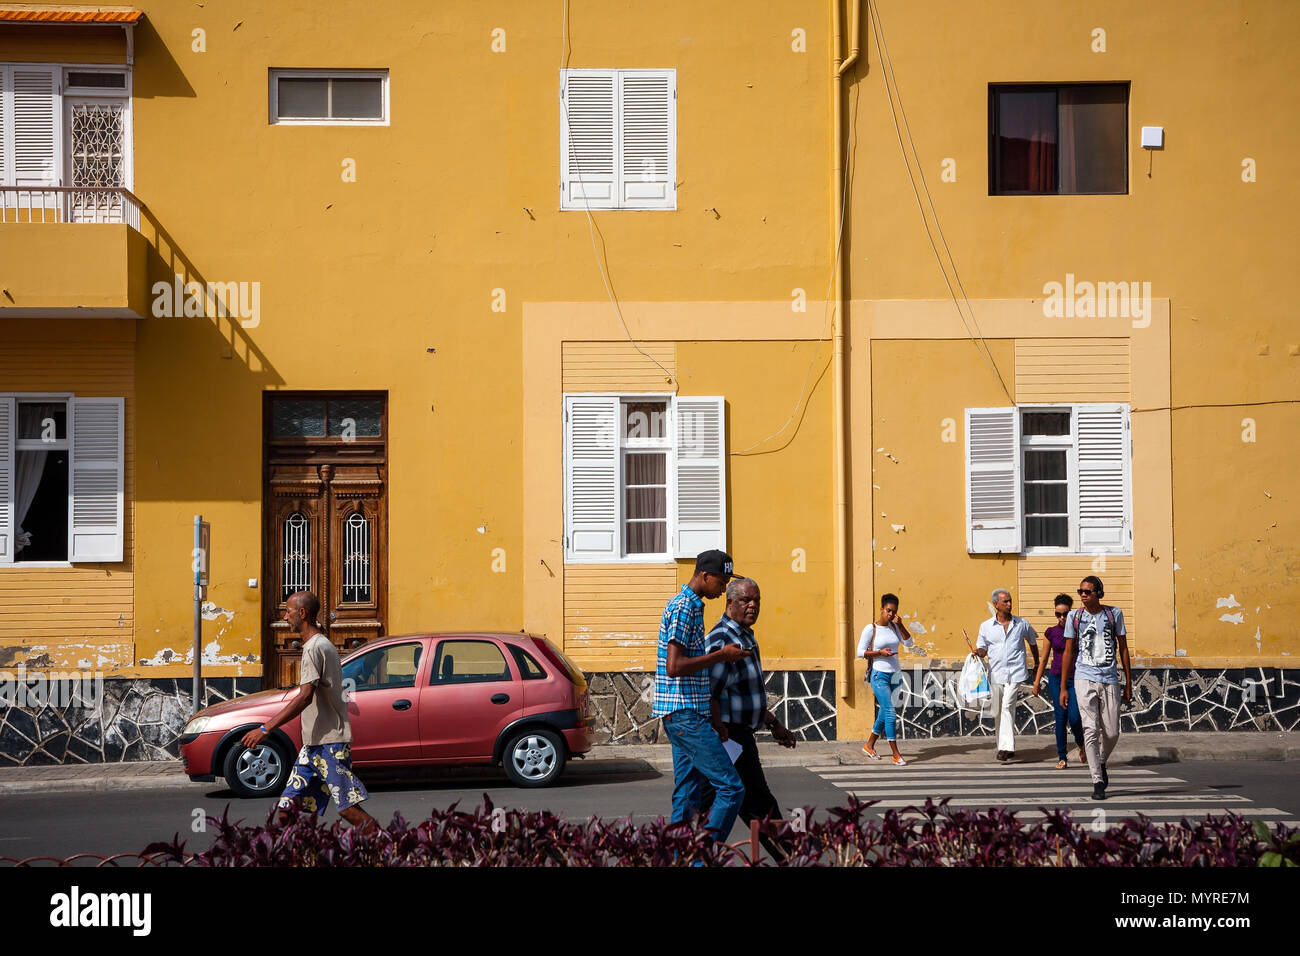 Life in Mindelo, residents walking the streets. Town architecture,  large yellow building wall MINDELO, CAPE VERDE - DECEMBER 07, 2015 Stock Photo